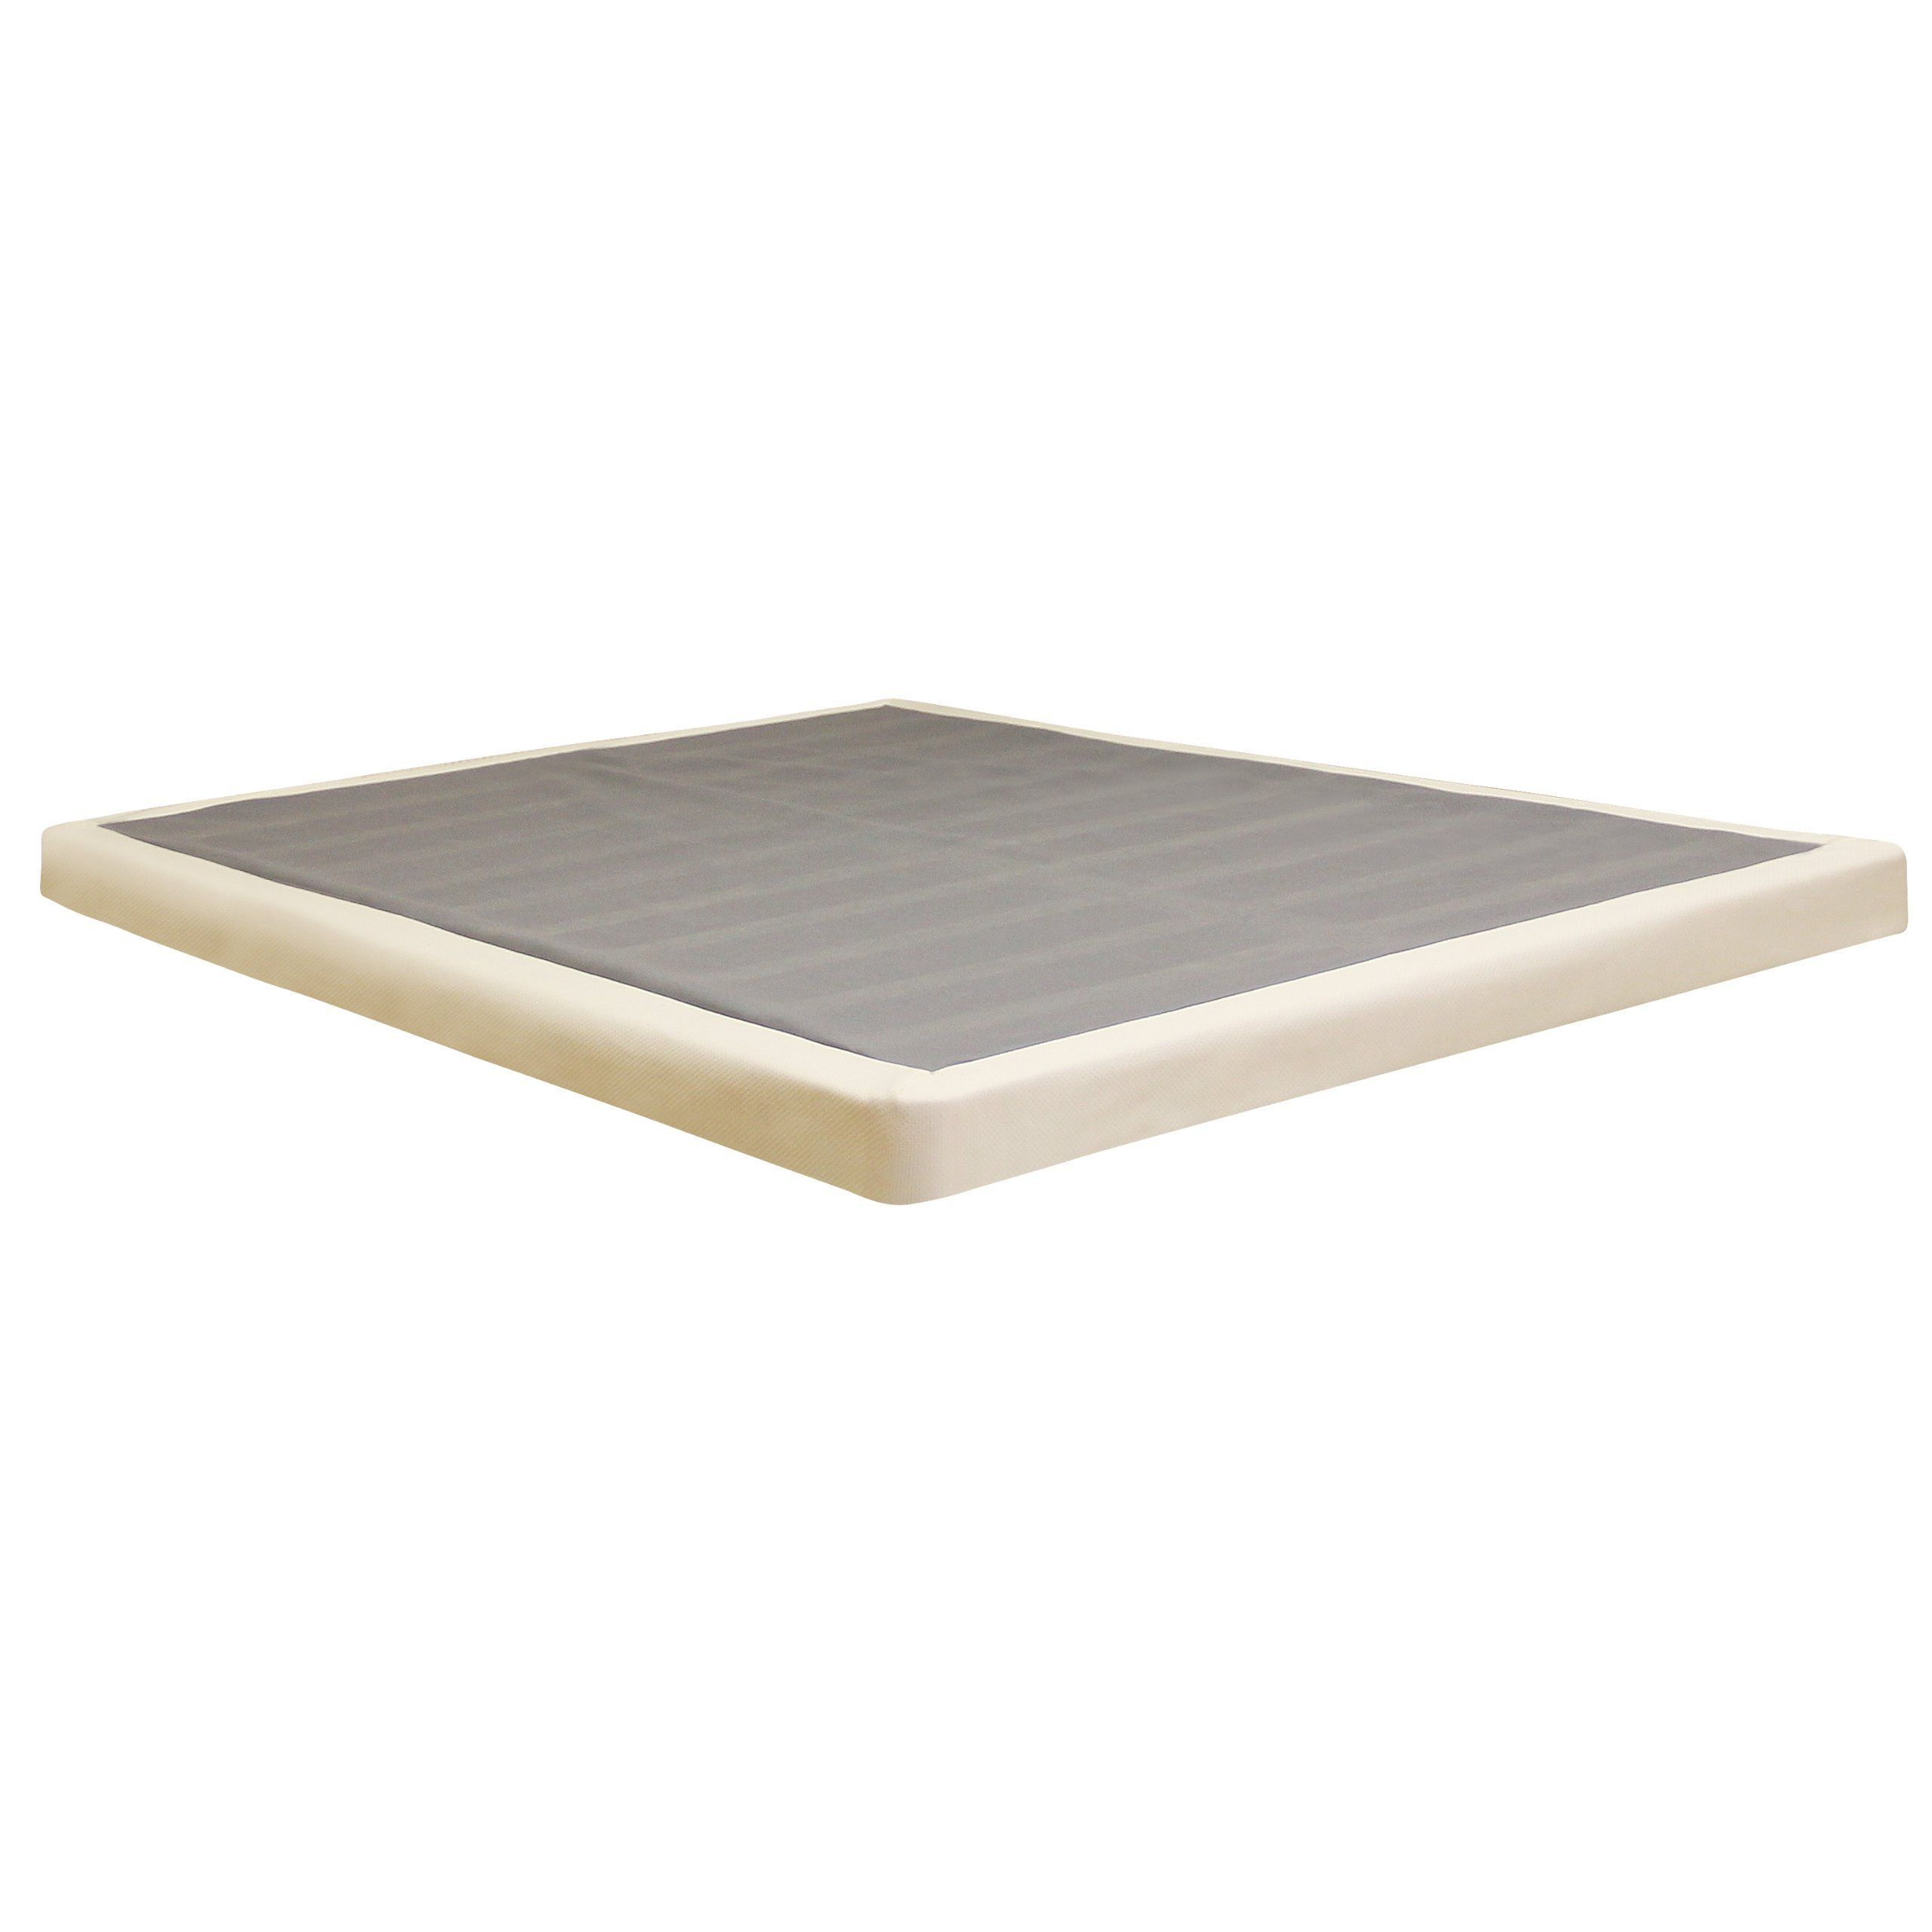 Classic Brands Low Profile Foundation Box Spring, 4 Inch ...